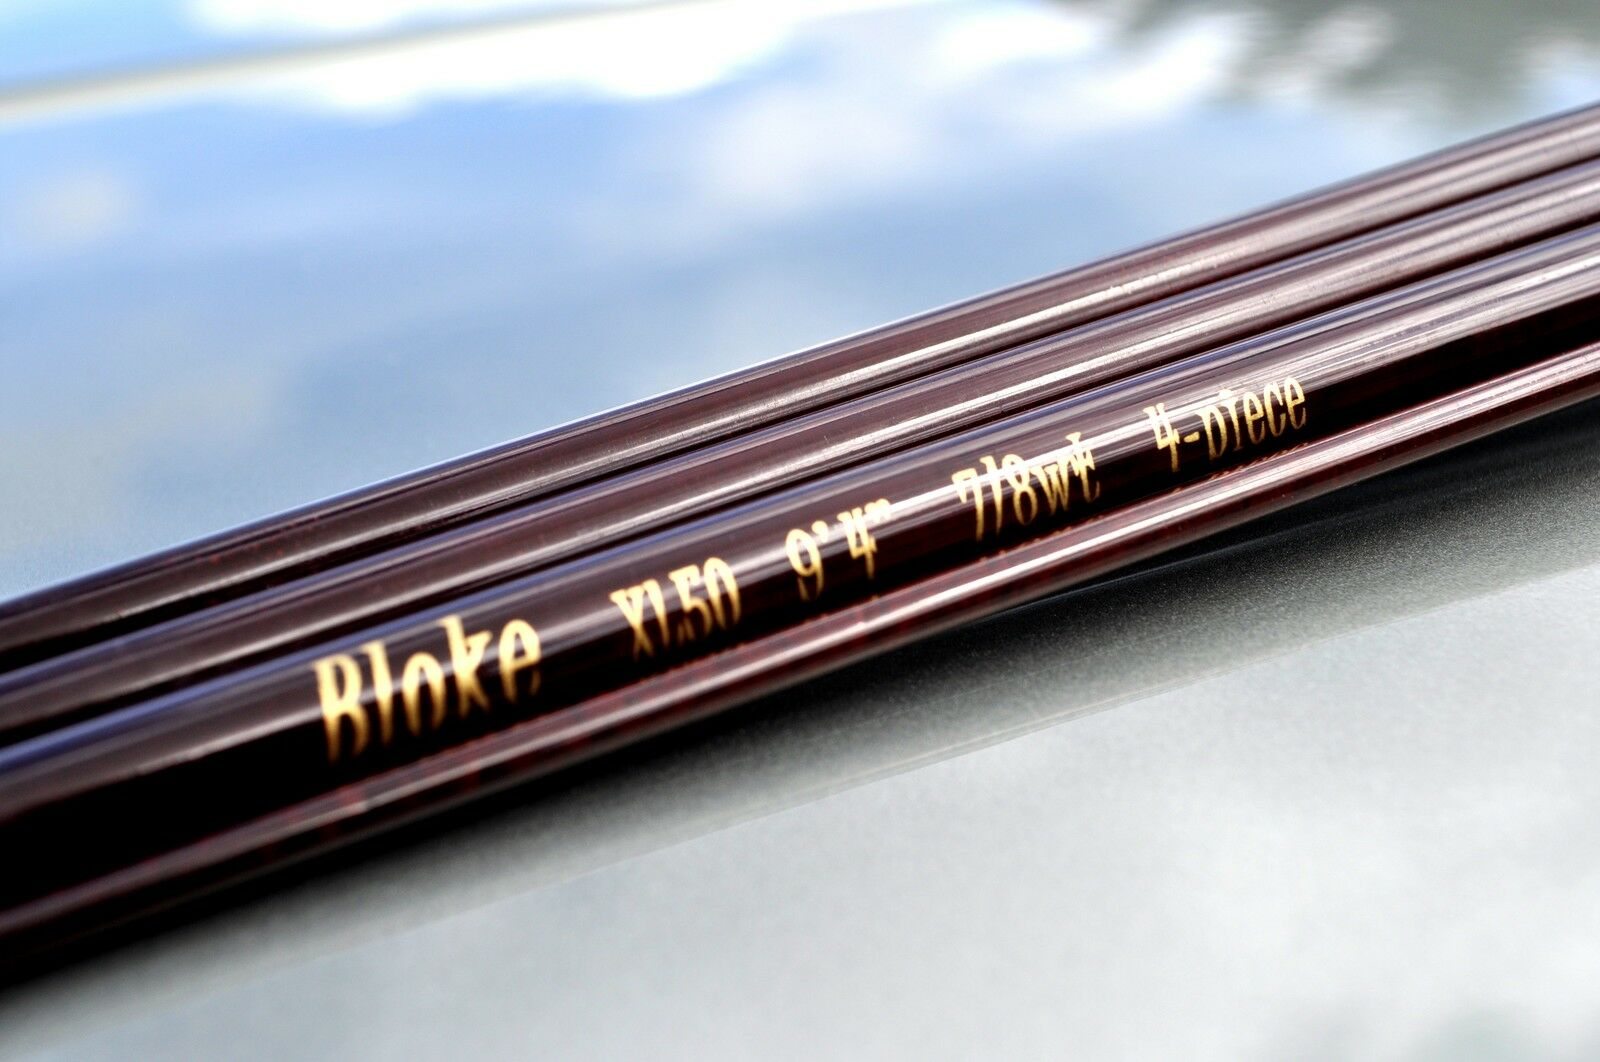 Bloke fly rod blank XL50 10' 6wt